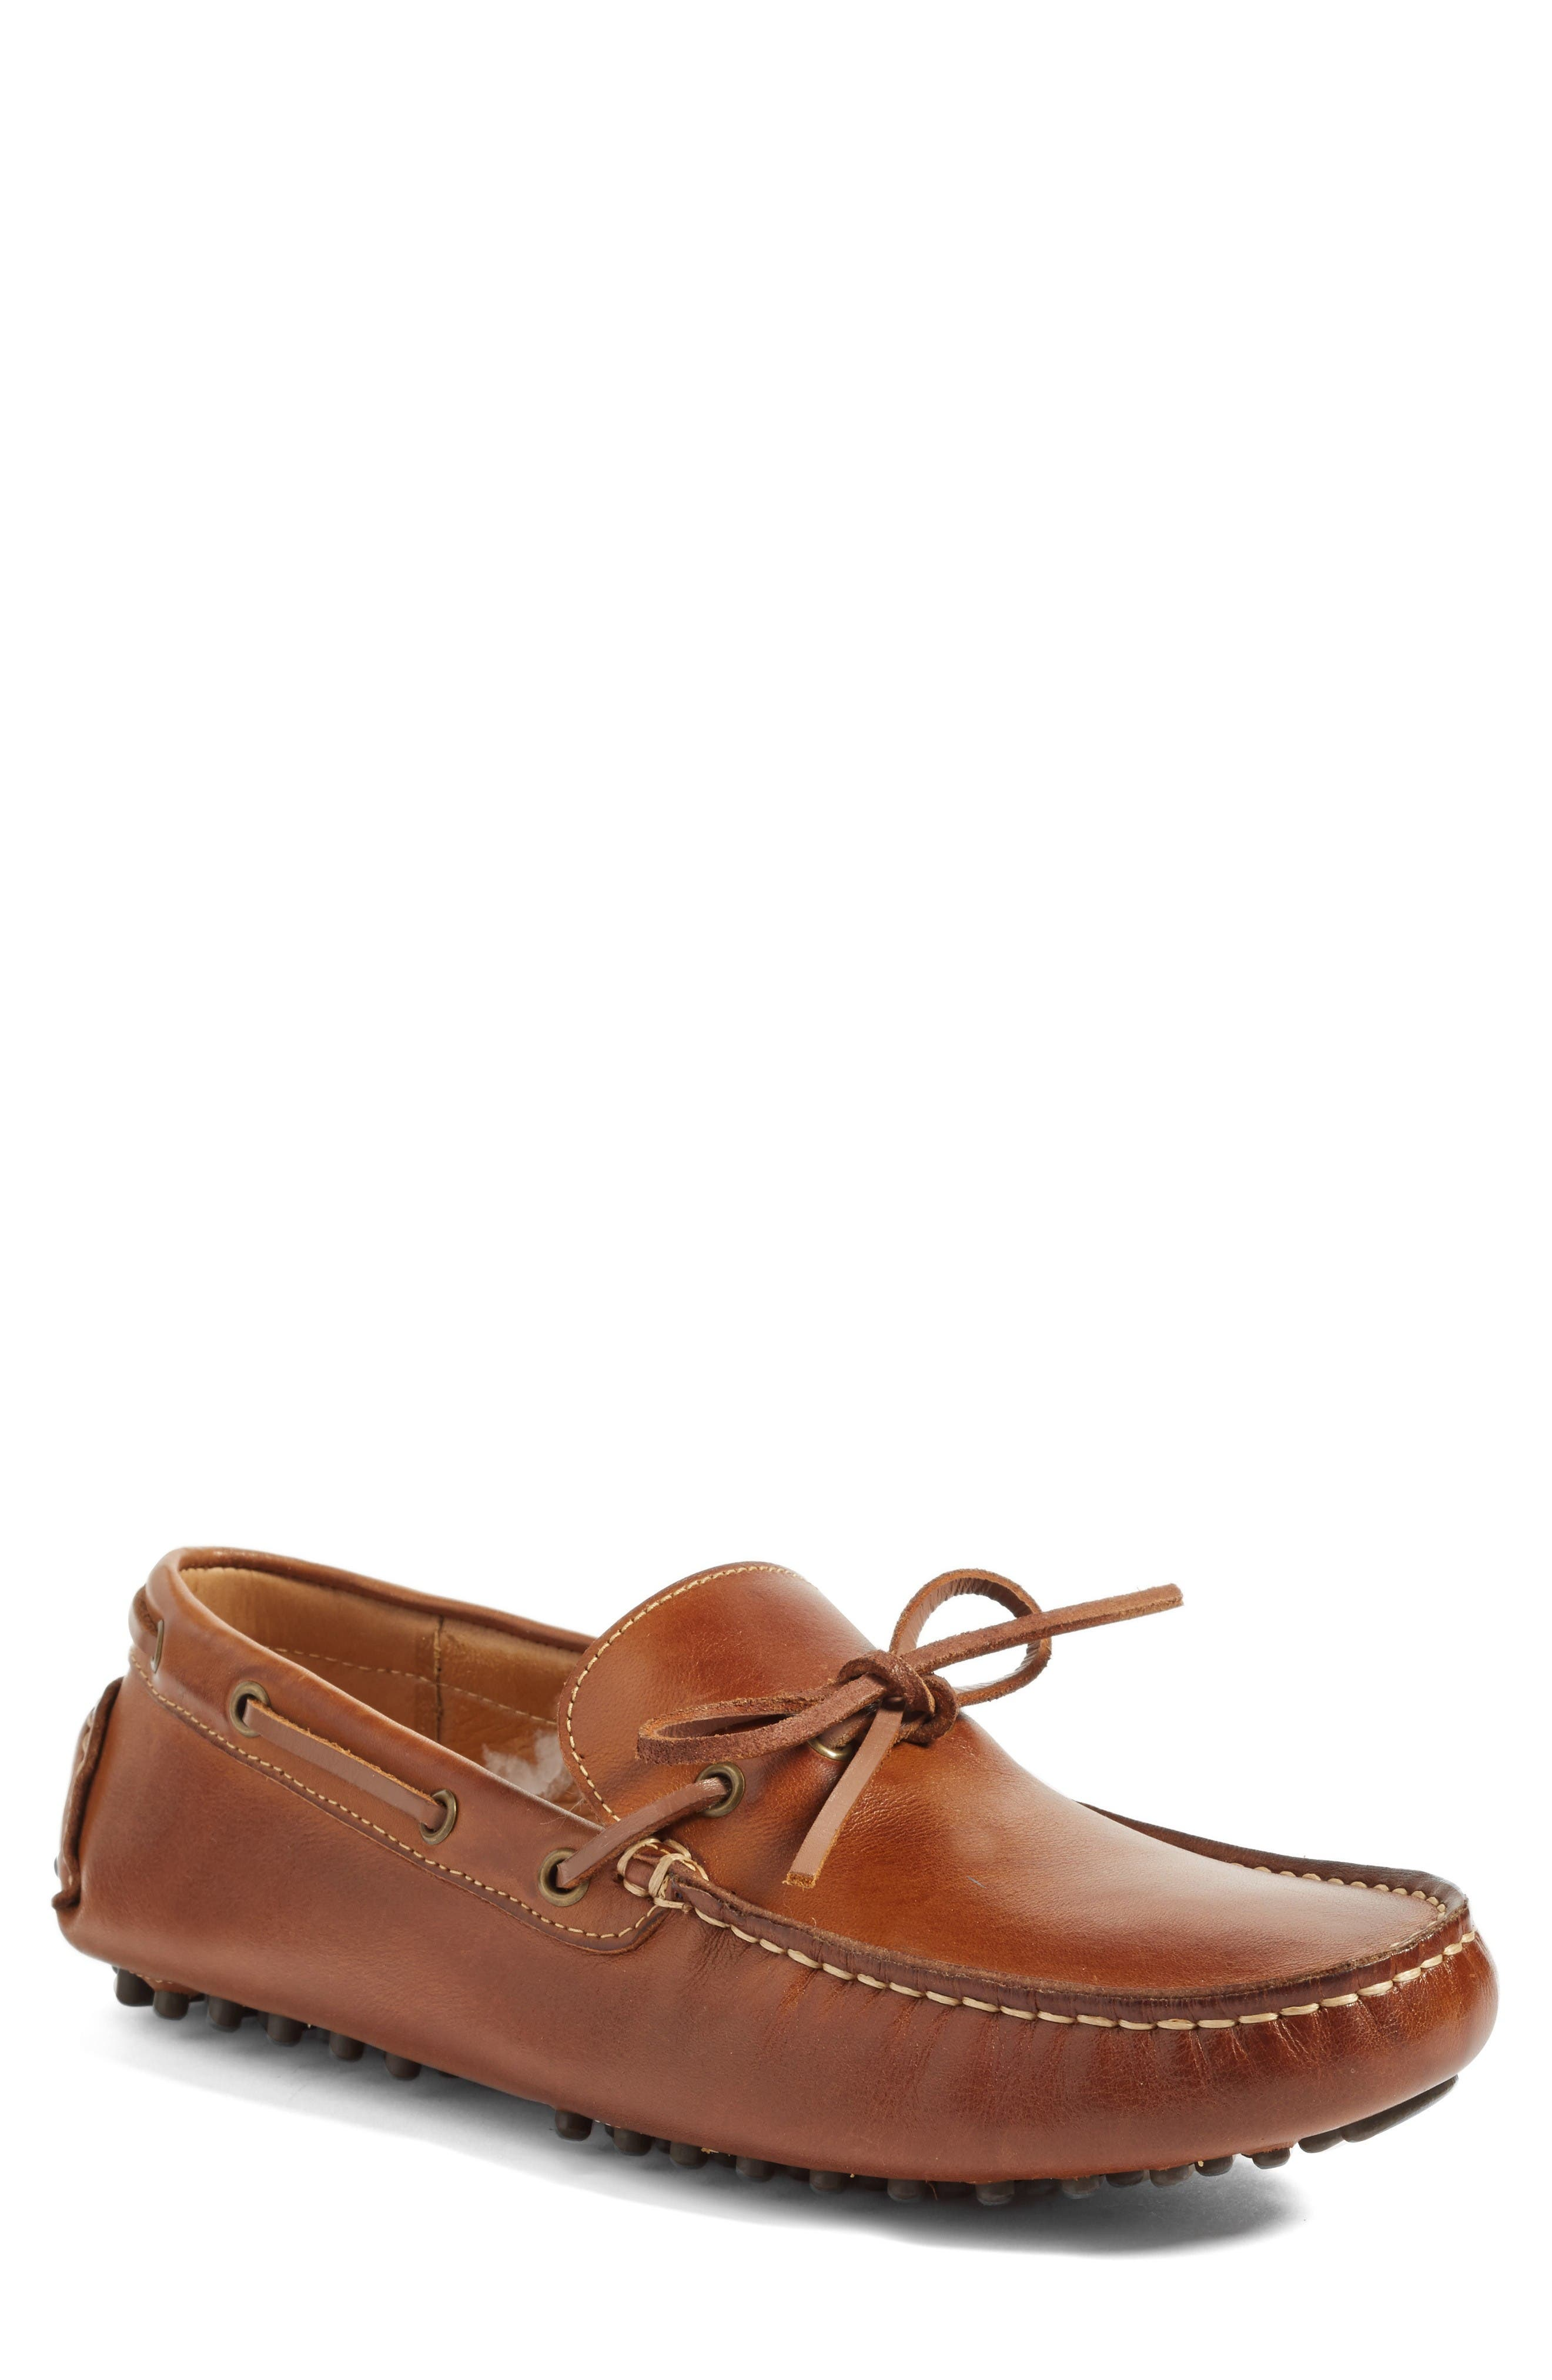 John W. Nordstrom® Midland Driving Shoe (Men)